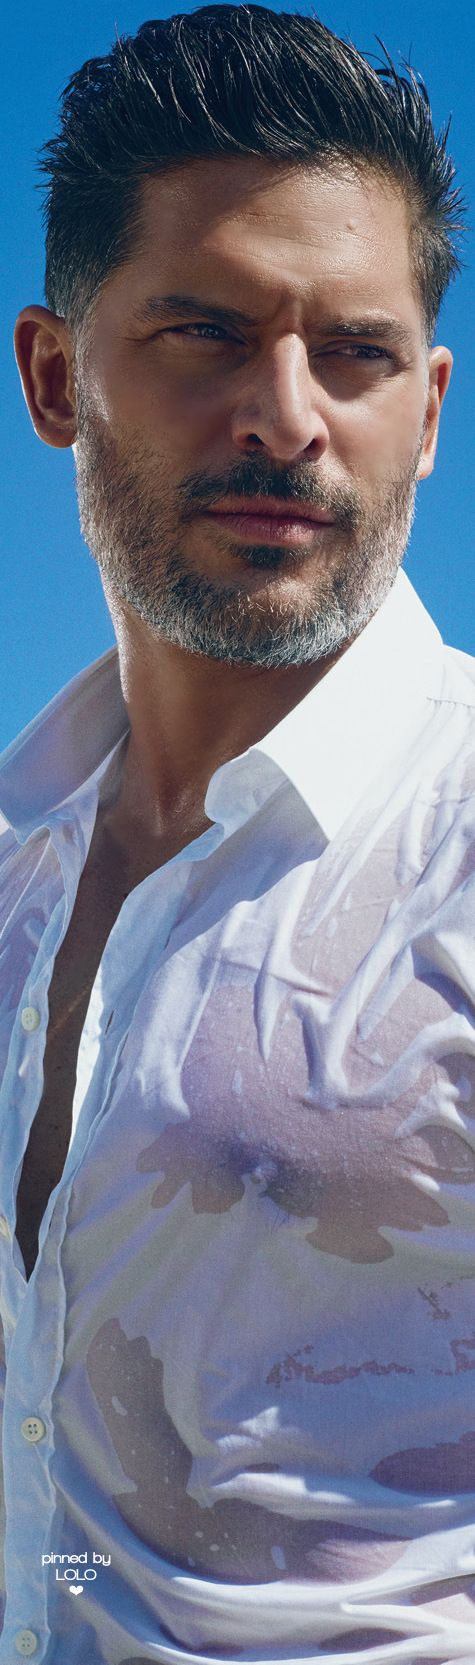 Joe Manganiello for Detail Magazine | LOLO❤︎